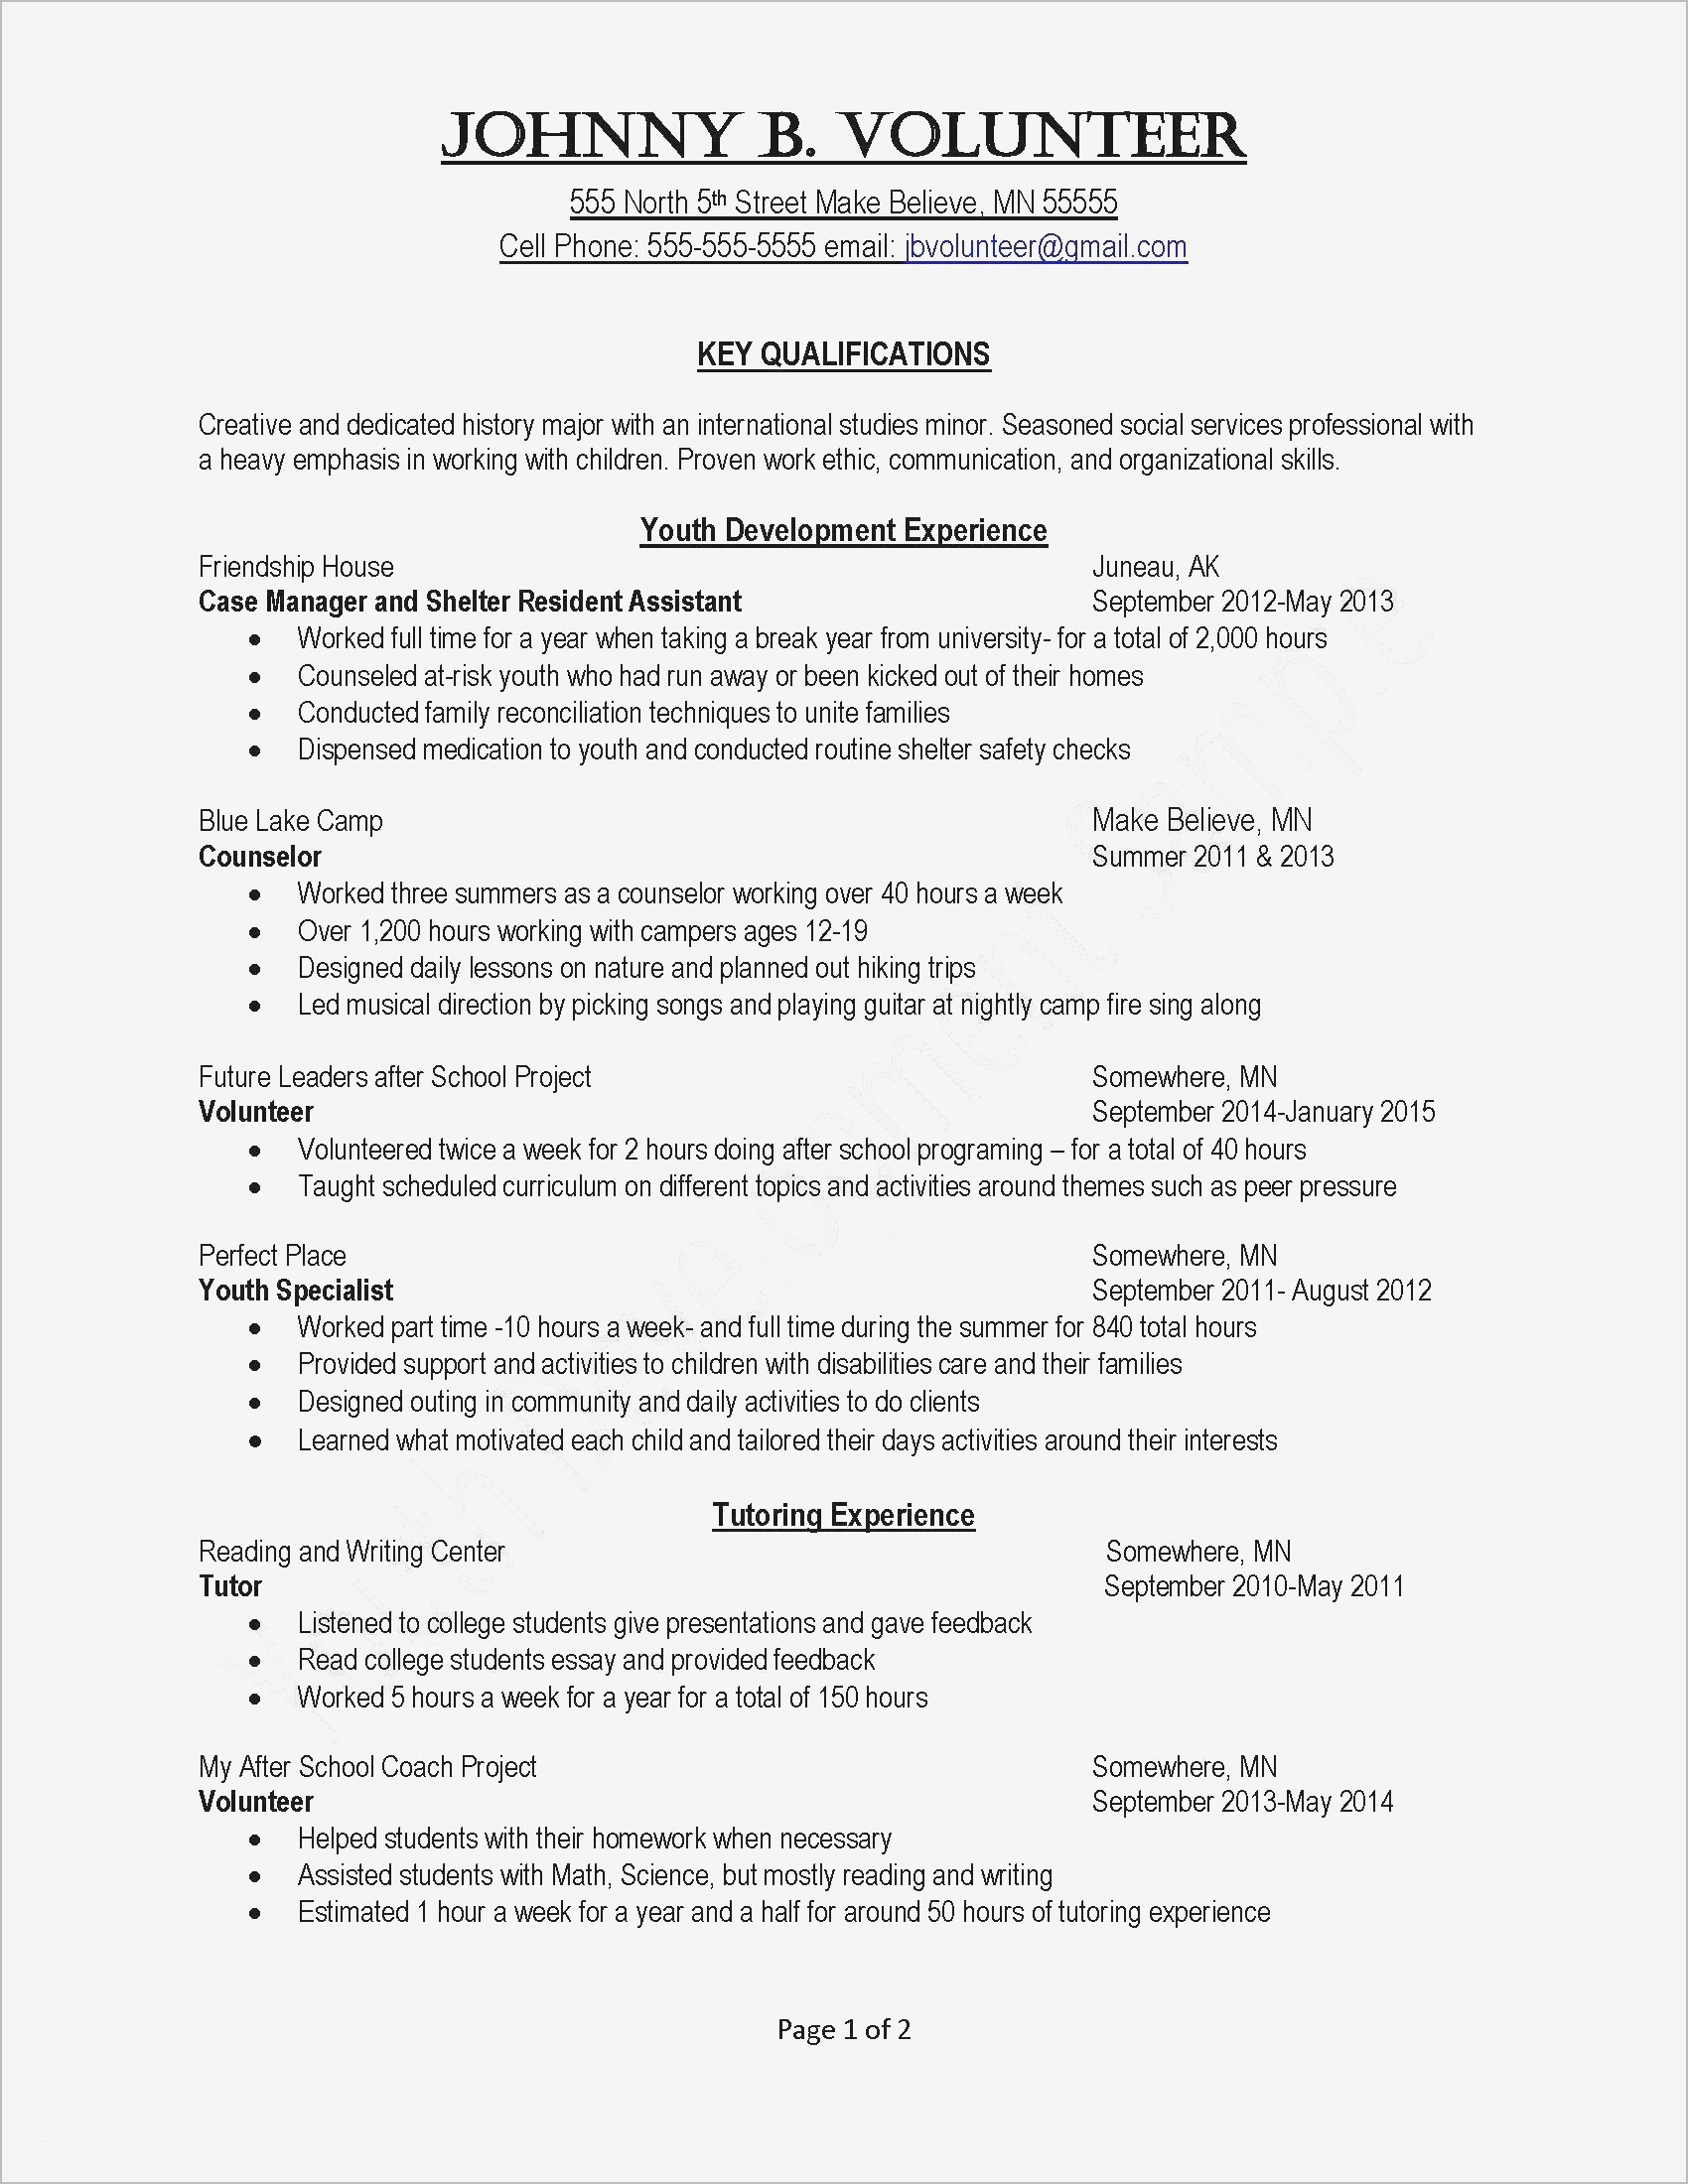 Np Resume Samples - Nurse Practitioner Resume Examples Staggering Resumes Skills